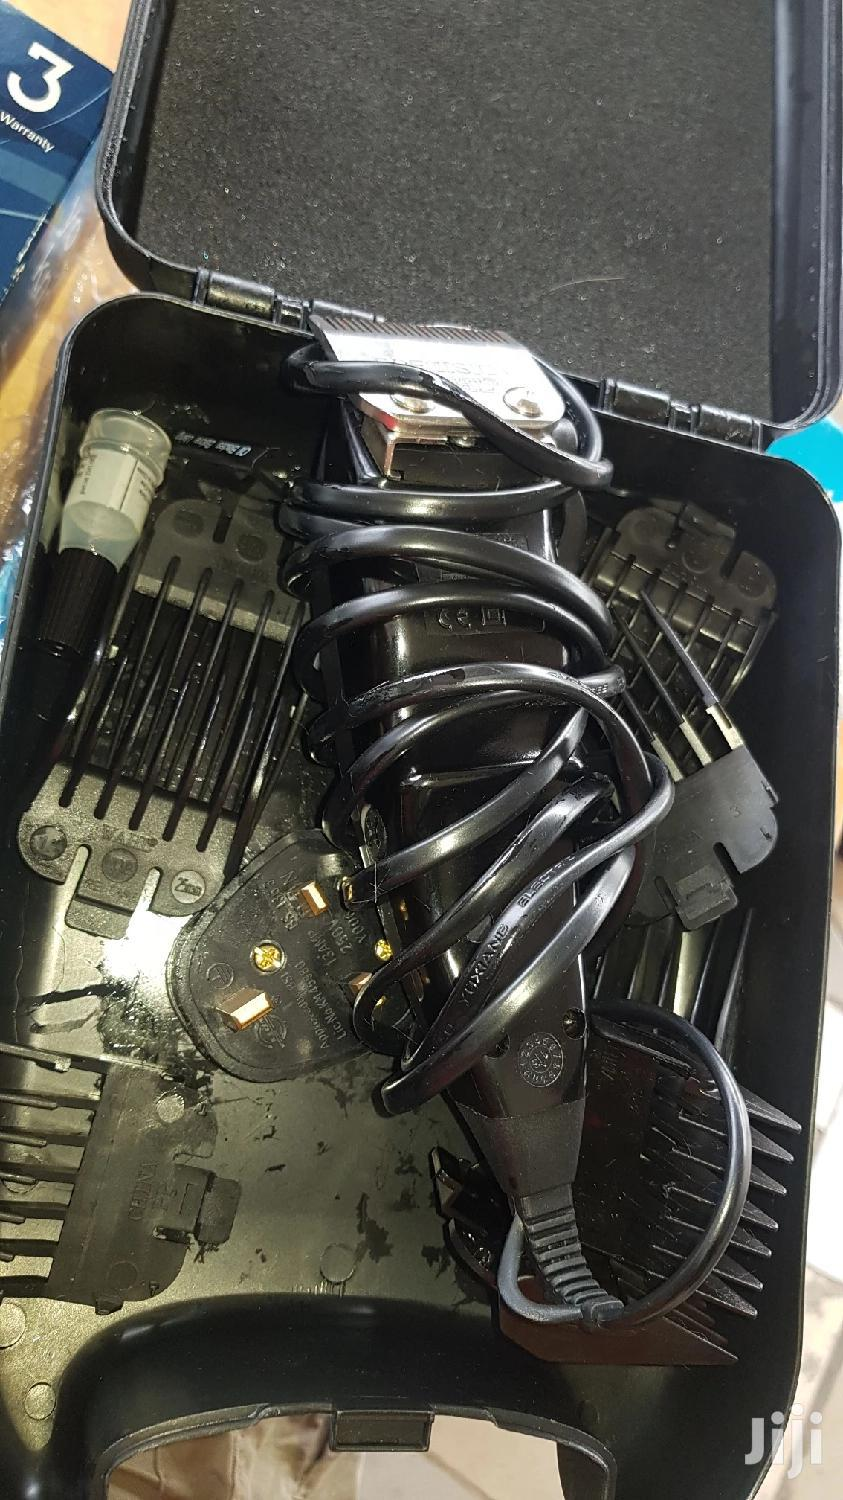 WAHL Hair Clipper / Shaver | Tools & Accessories for sale in Ga East Municipal, Greater Accra, Ghana